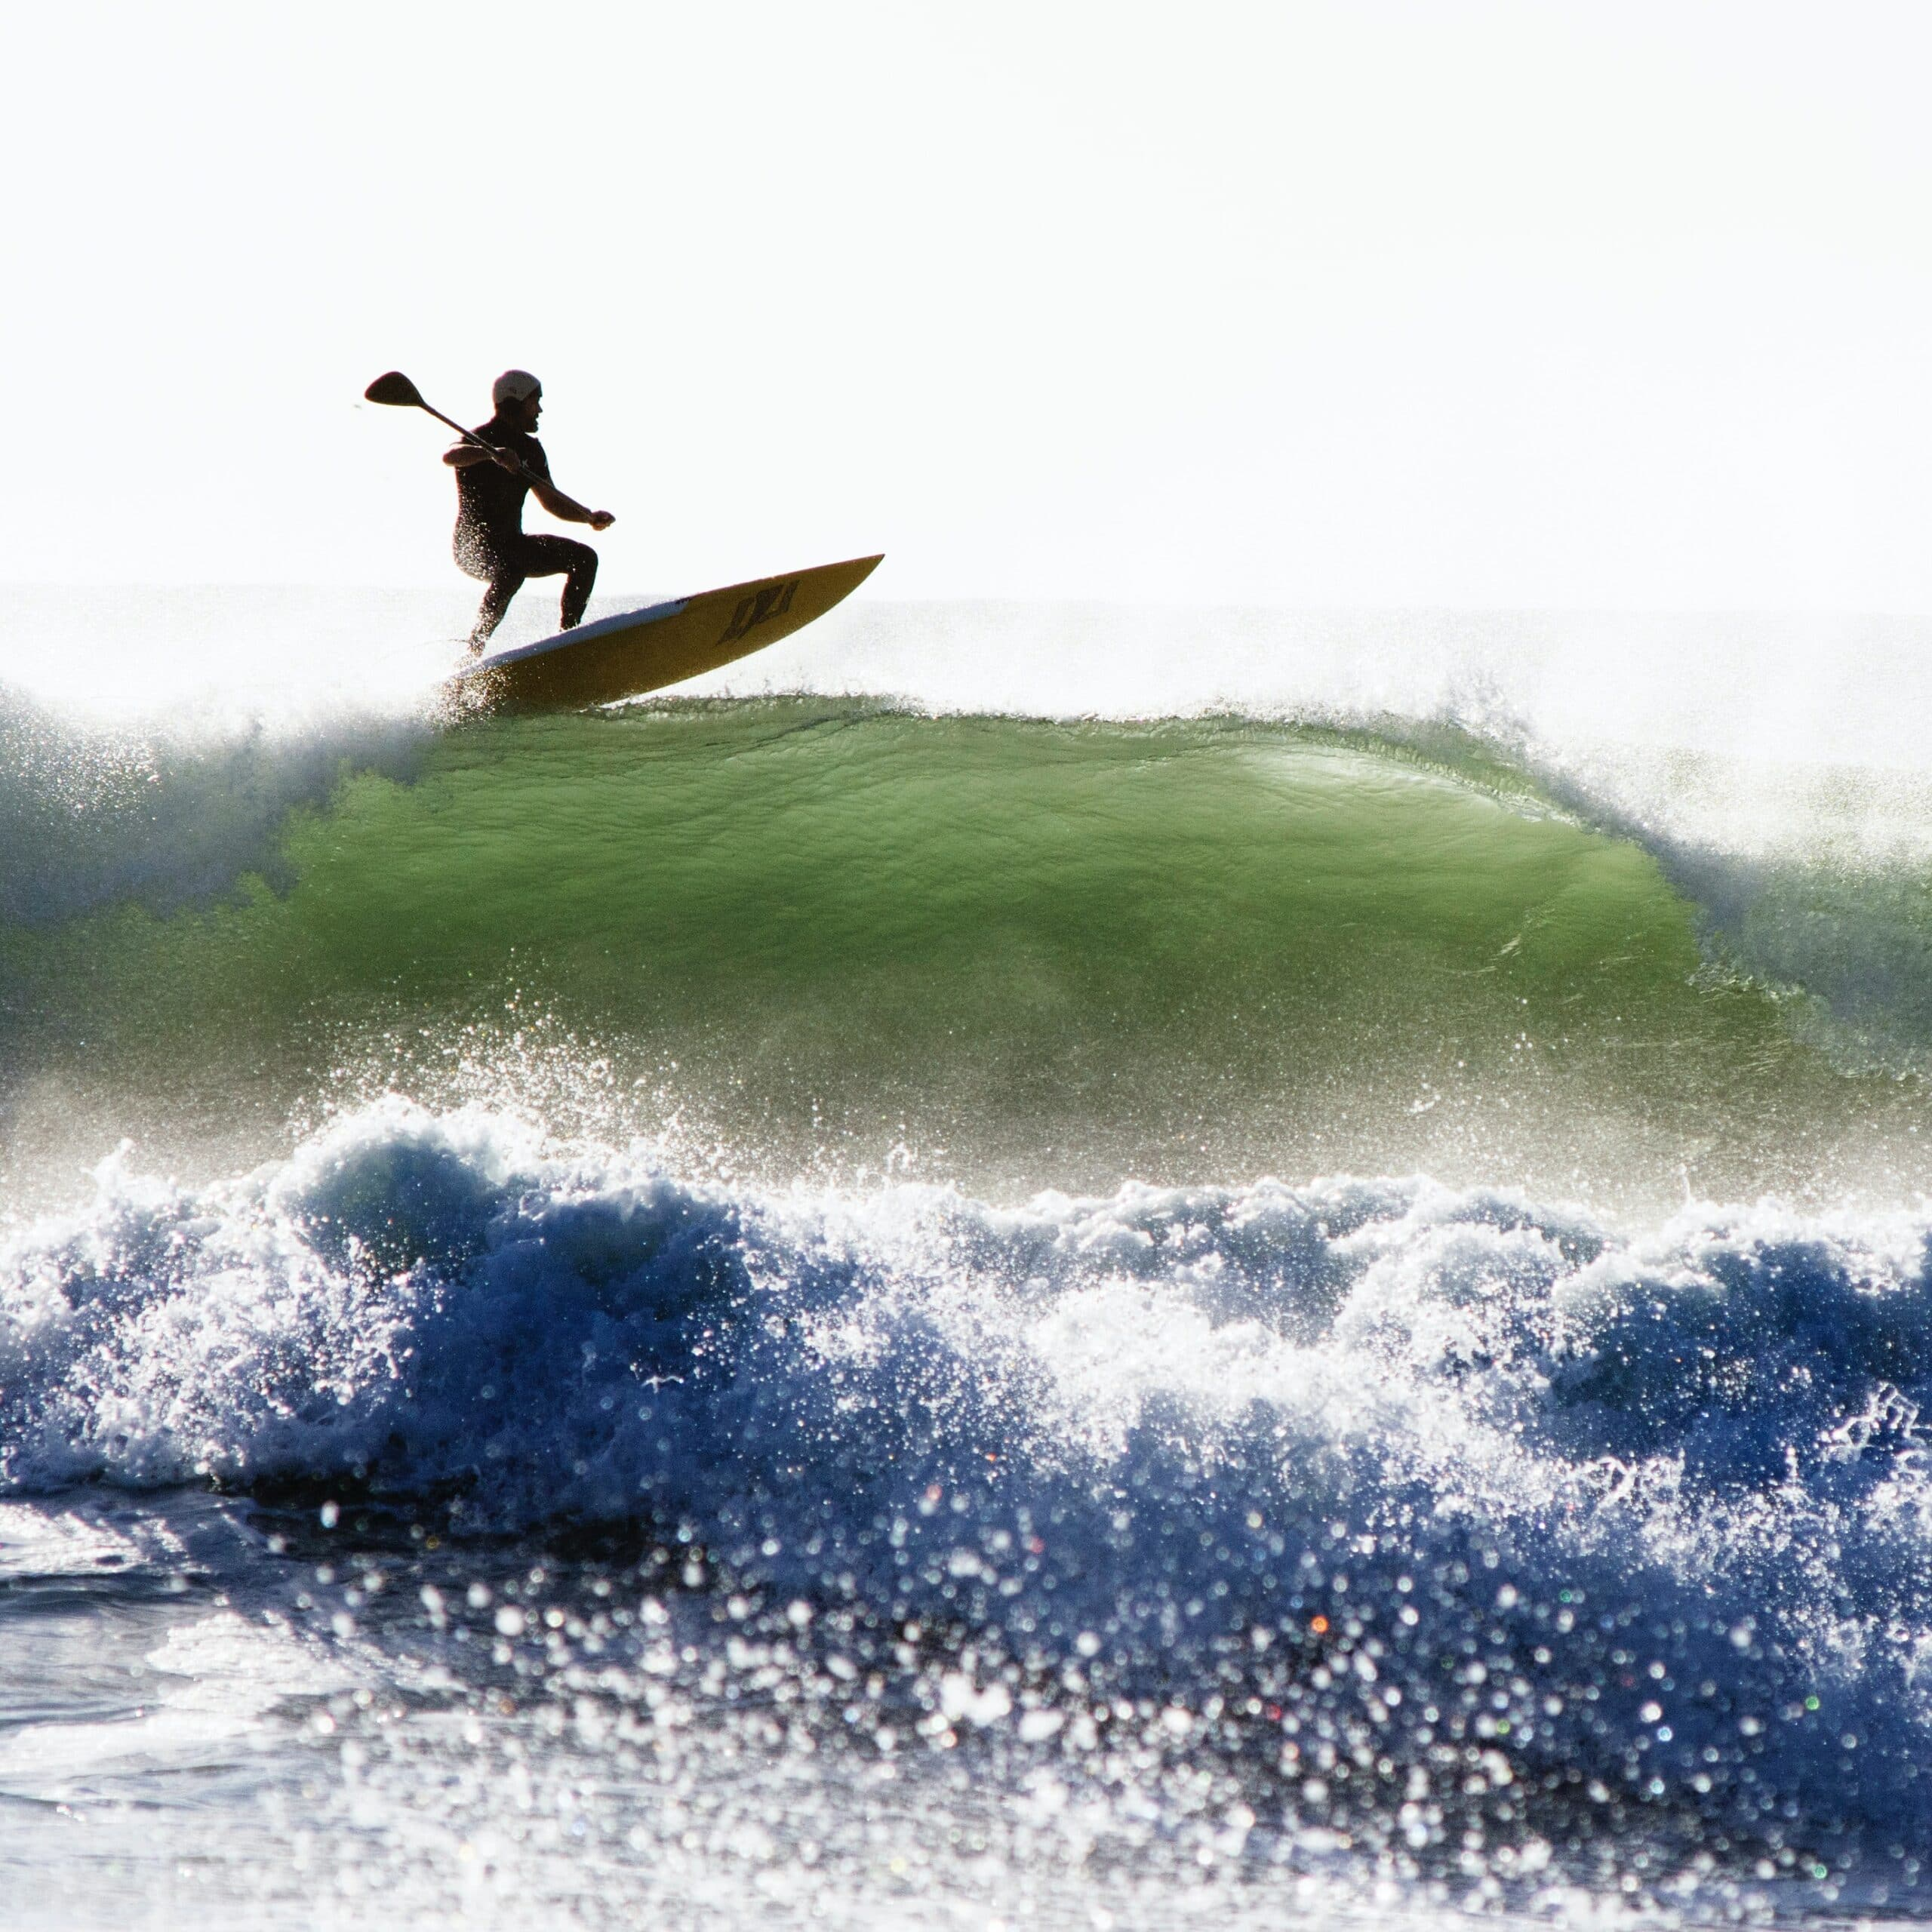 Man riding wave on SUP